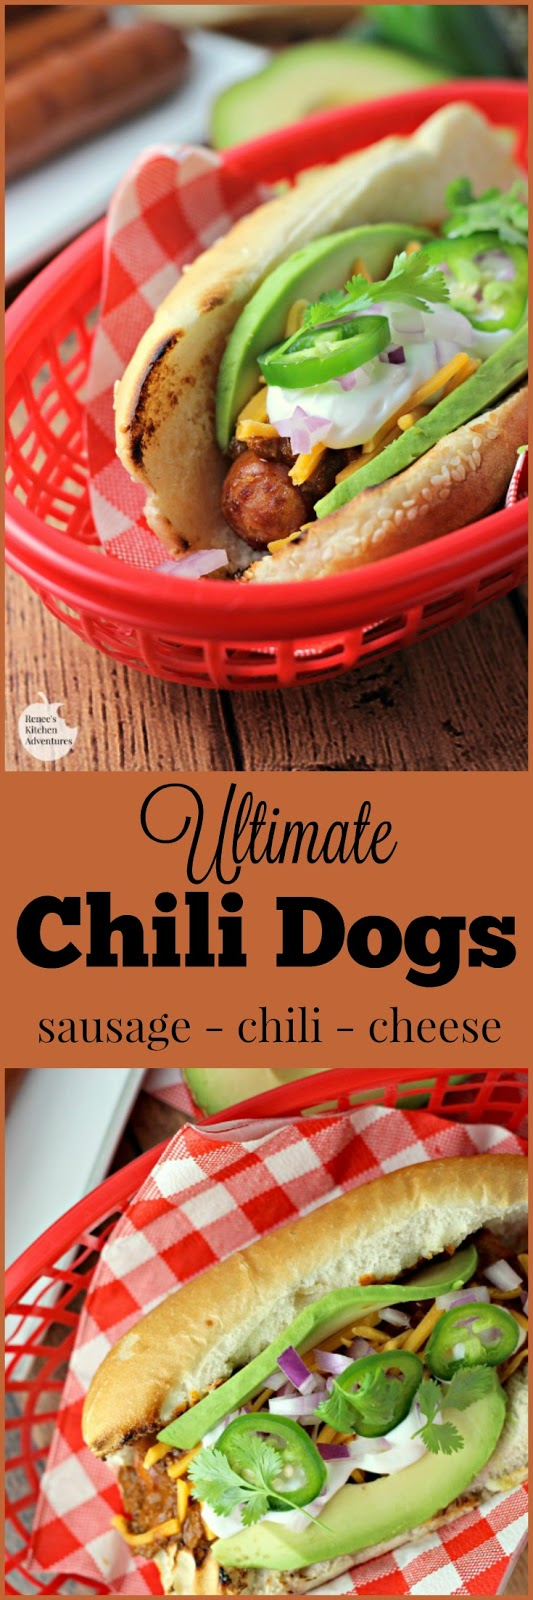 Ultimate chili dogs renee 39 s kitchen adventures for Renee s kitchen